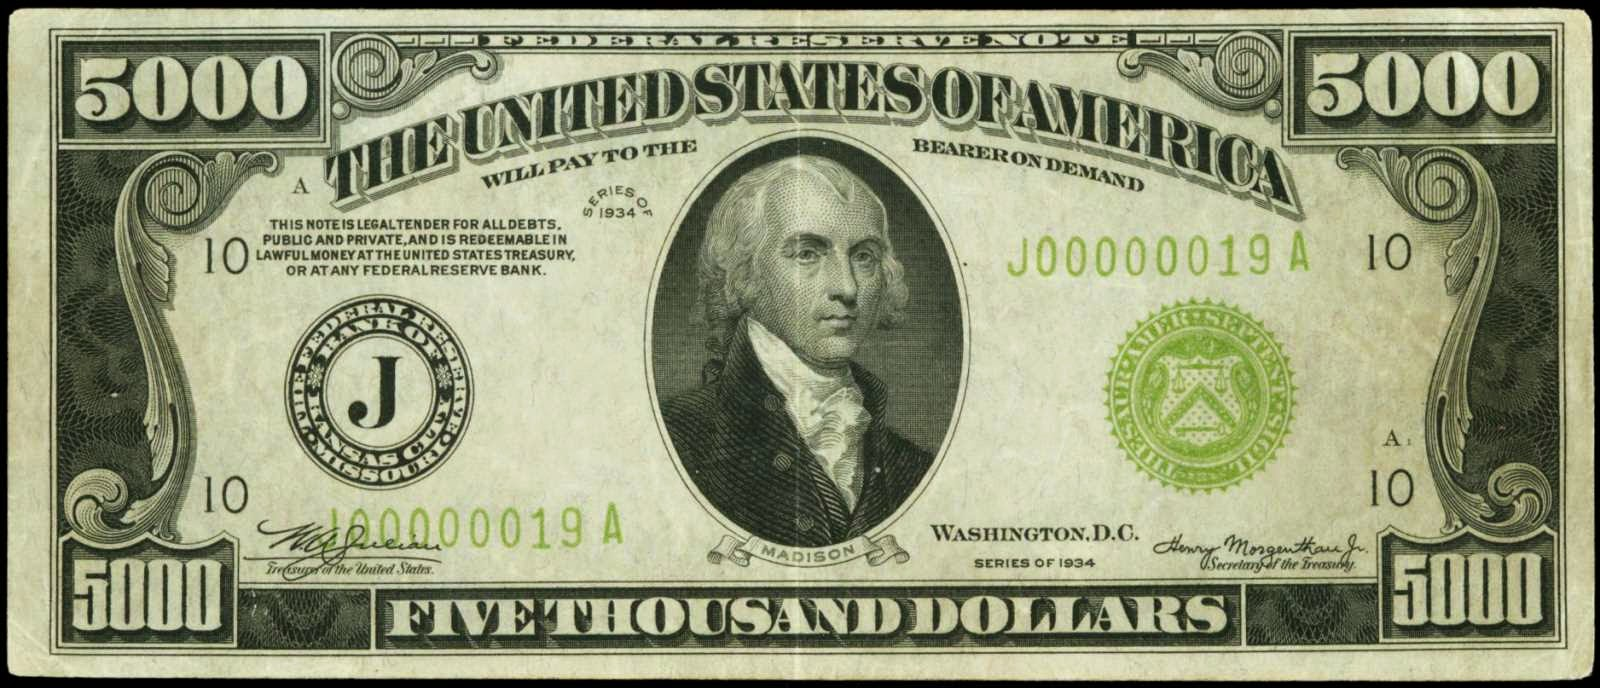 United States 1934 5000 Dollar Bill Federal Reserve Notes